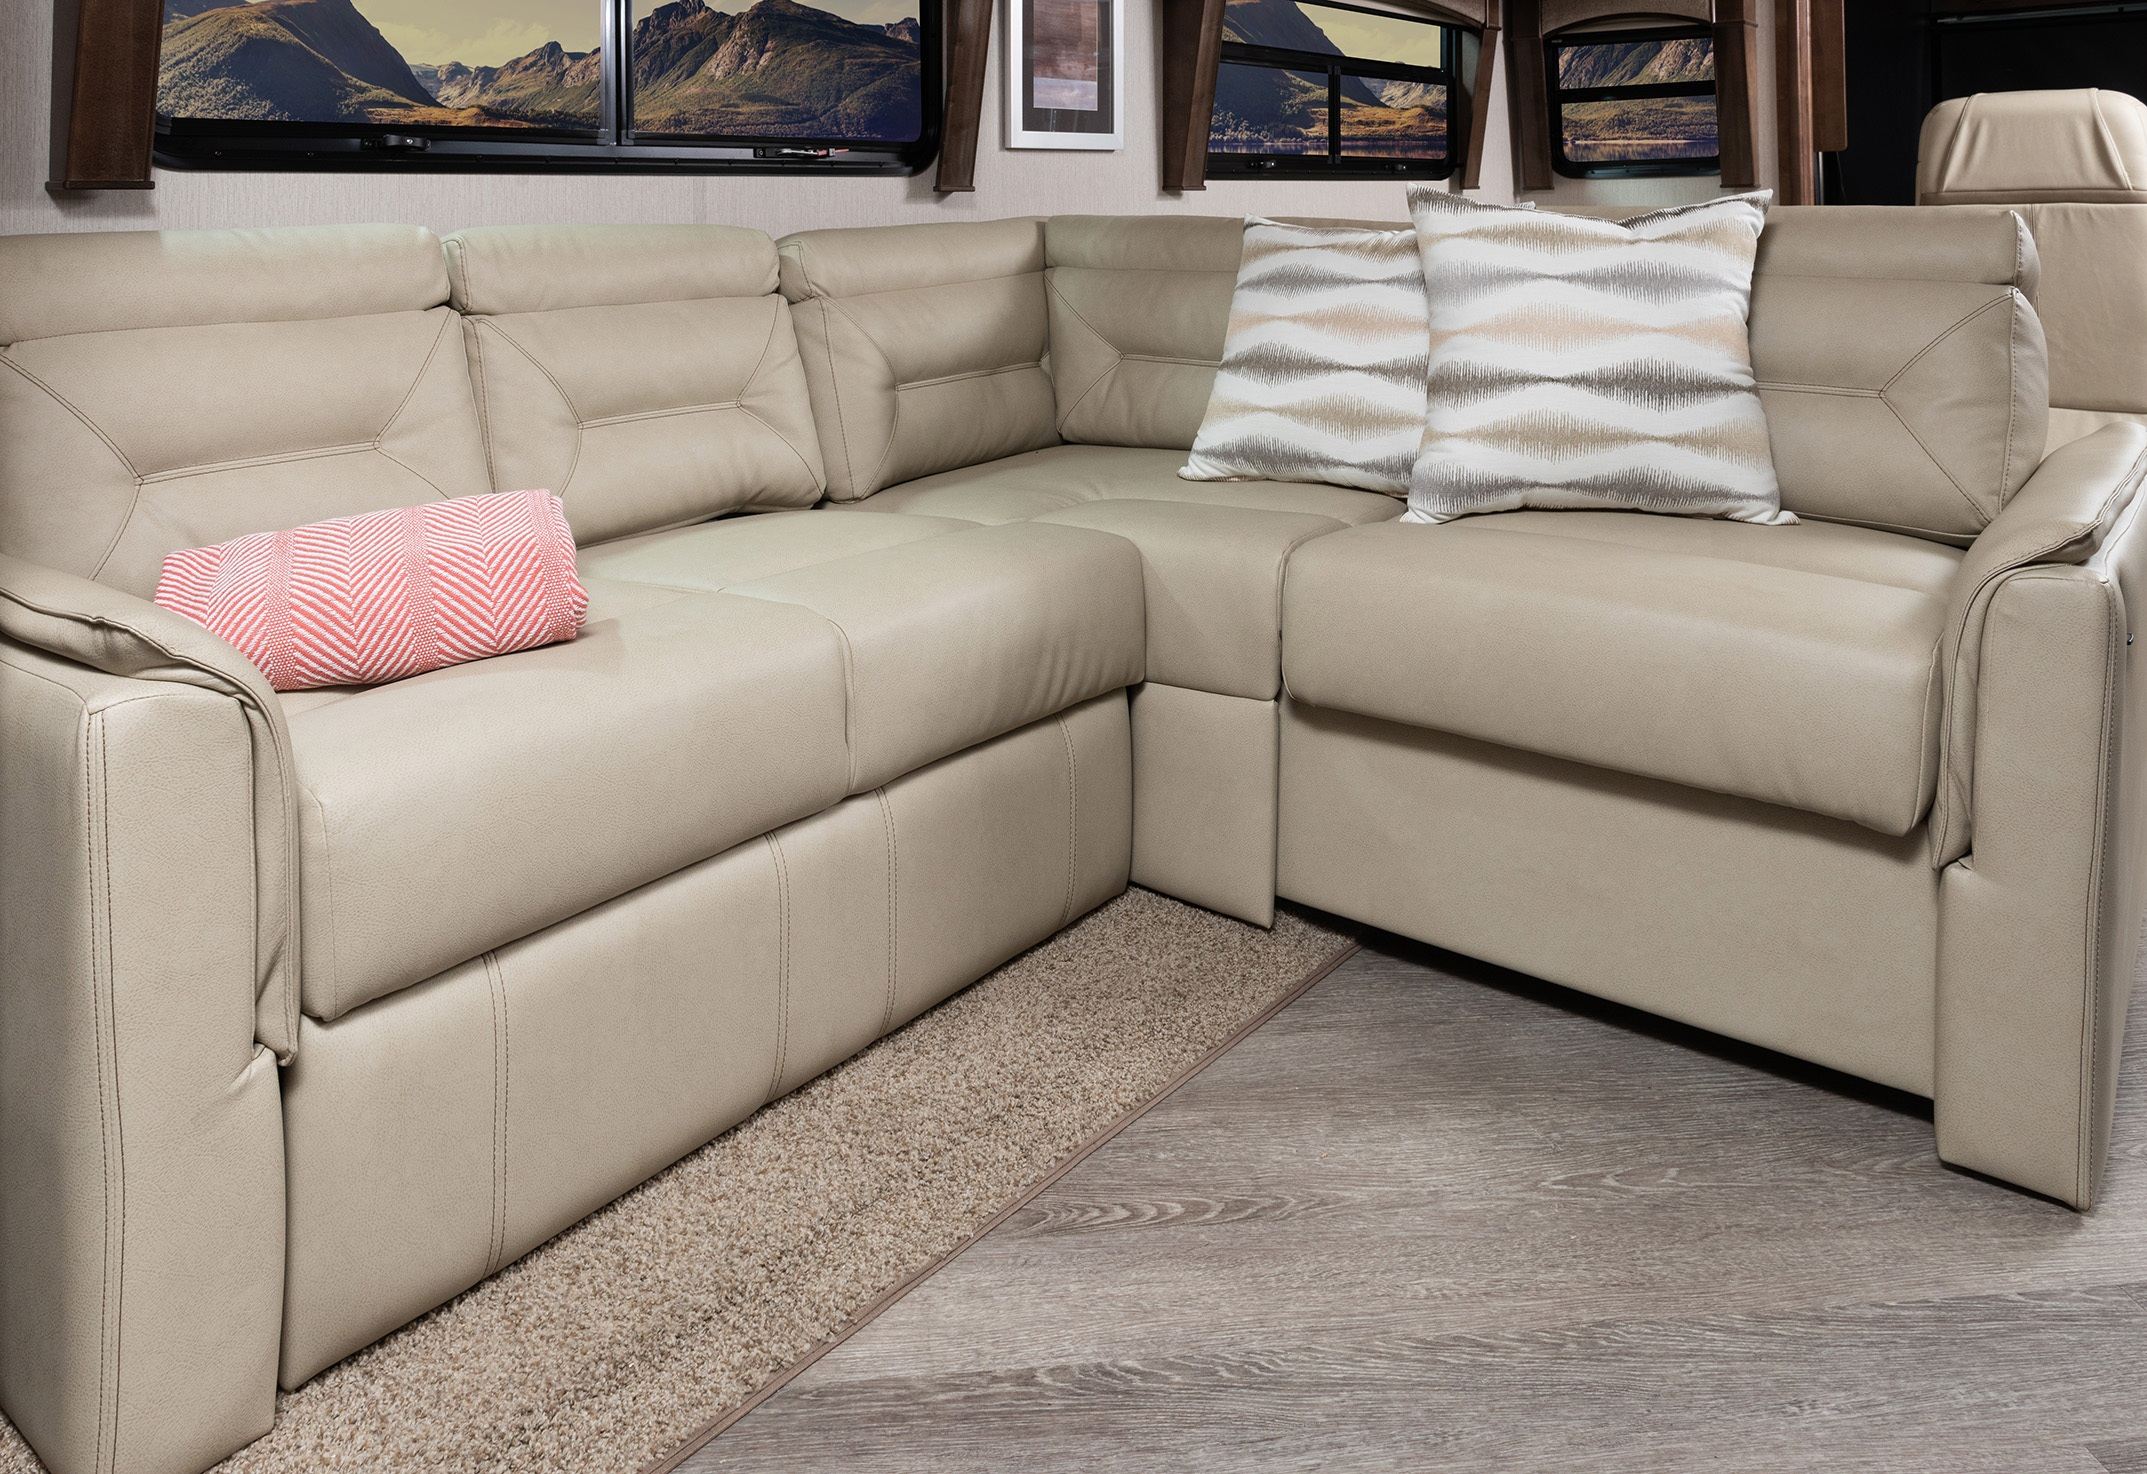 7 Lshapesofa PALXE38 K vapor oxford447 out